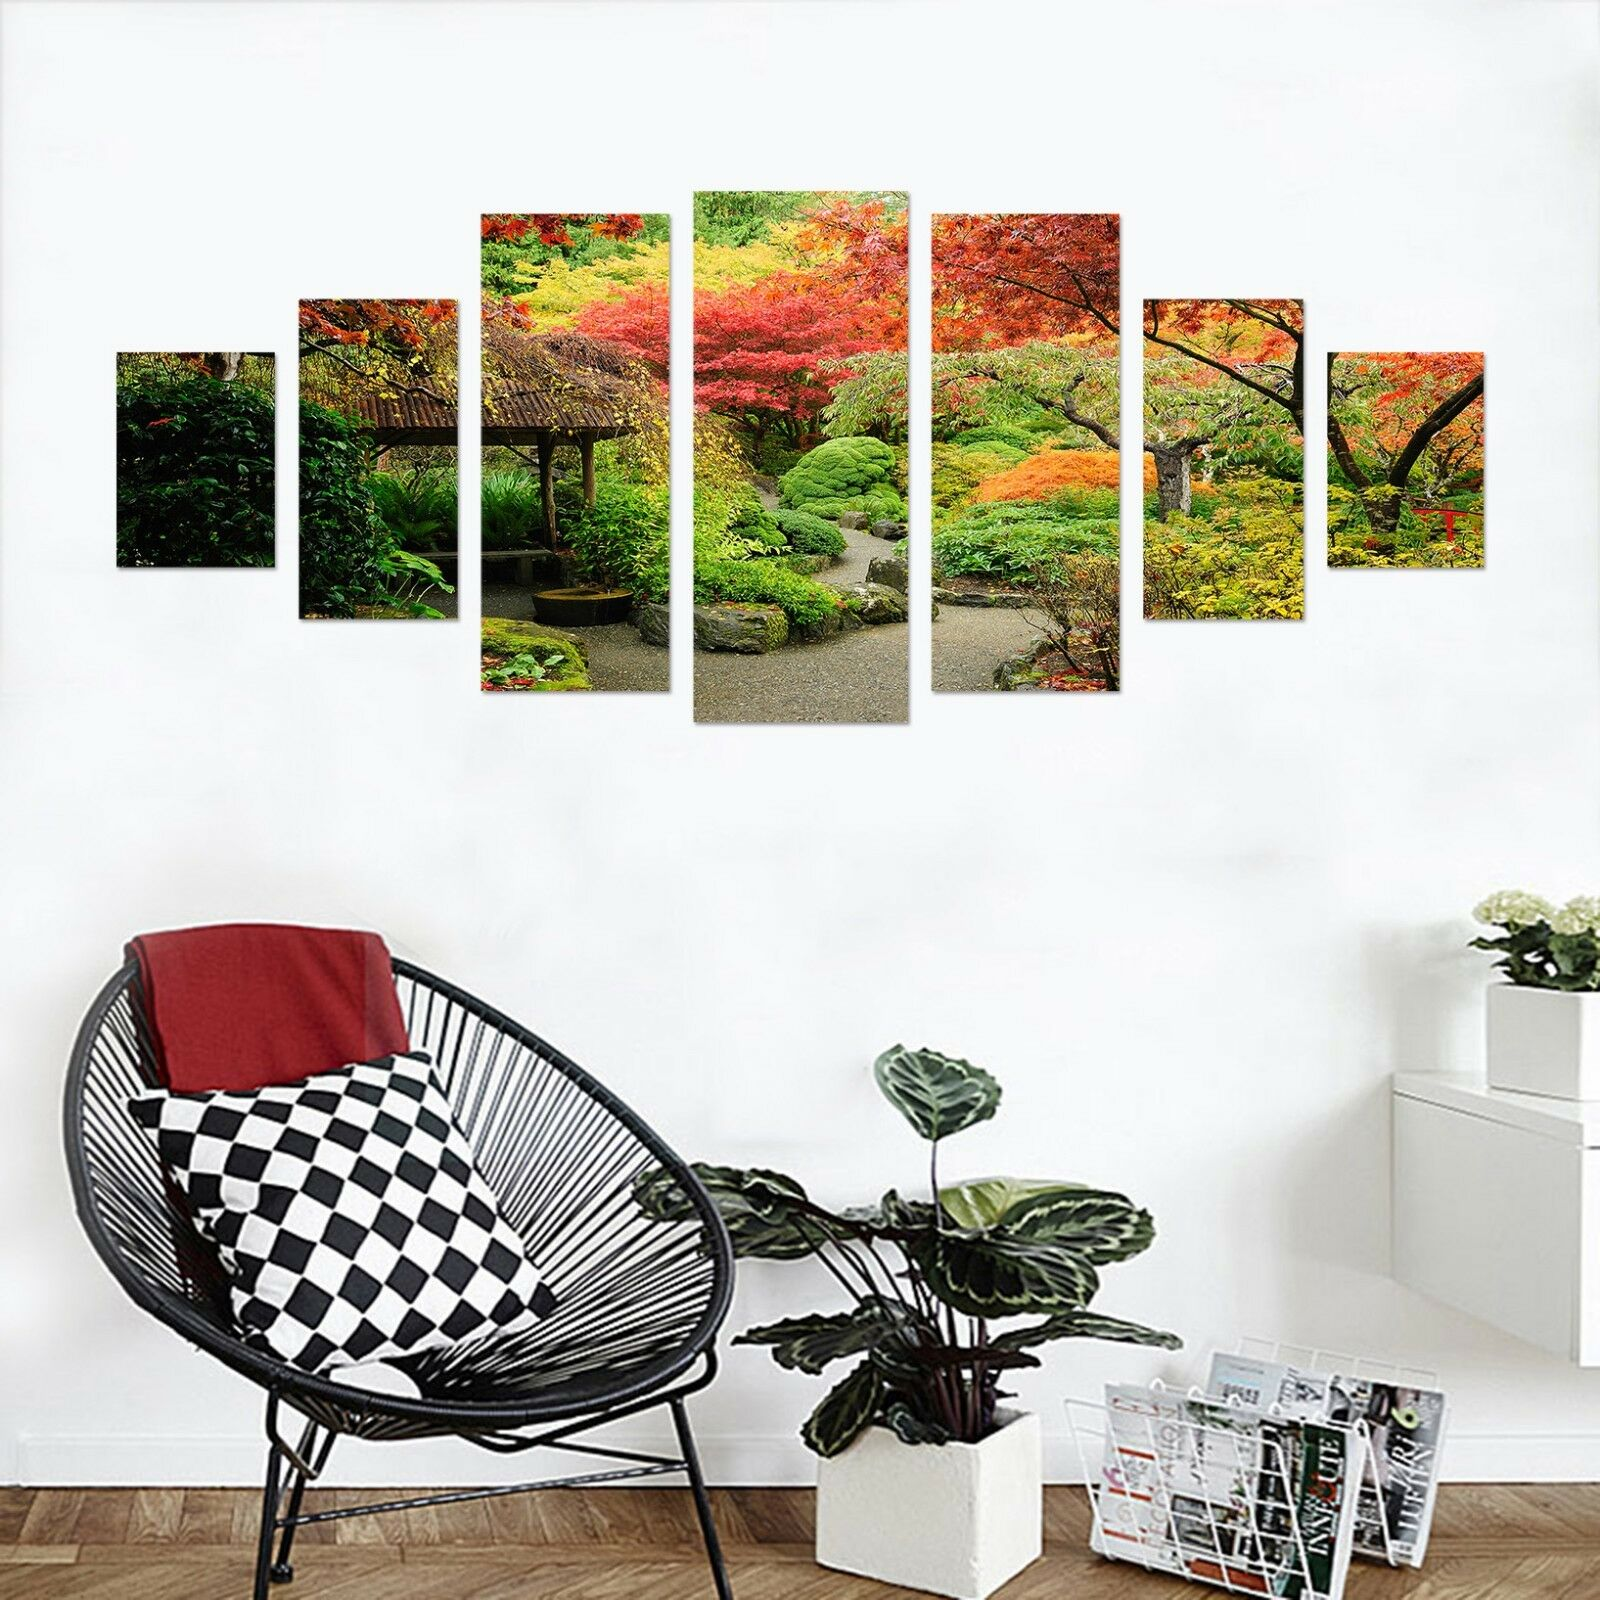 3D Forest Garden 66 Unframed impression Wall Paper Decal Wall Deco Indoor AJ Wall